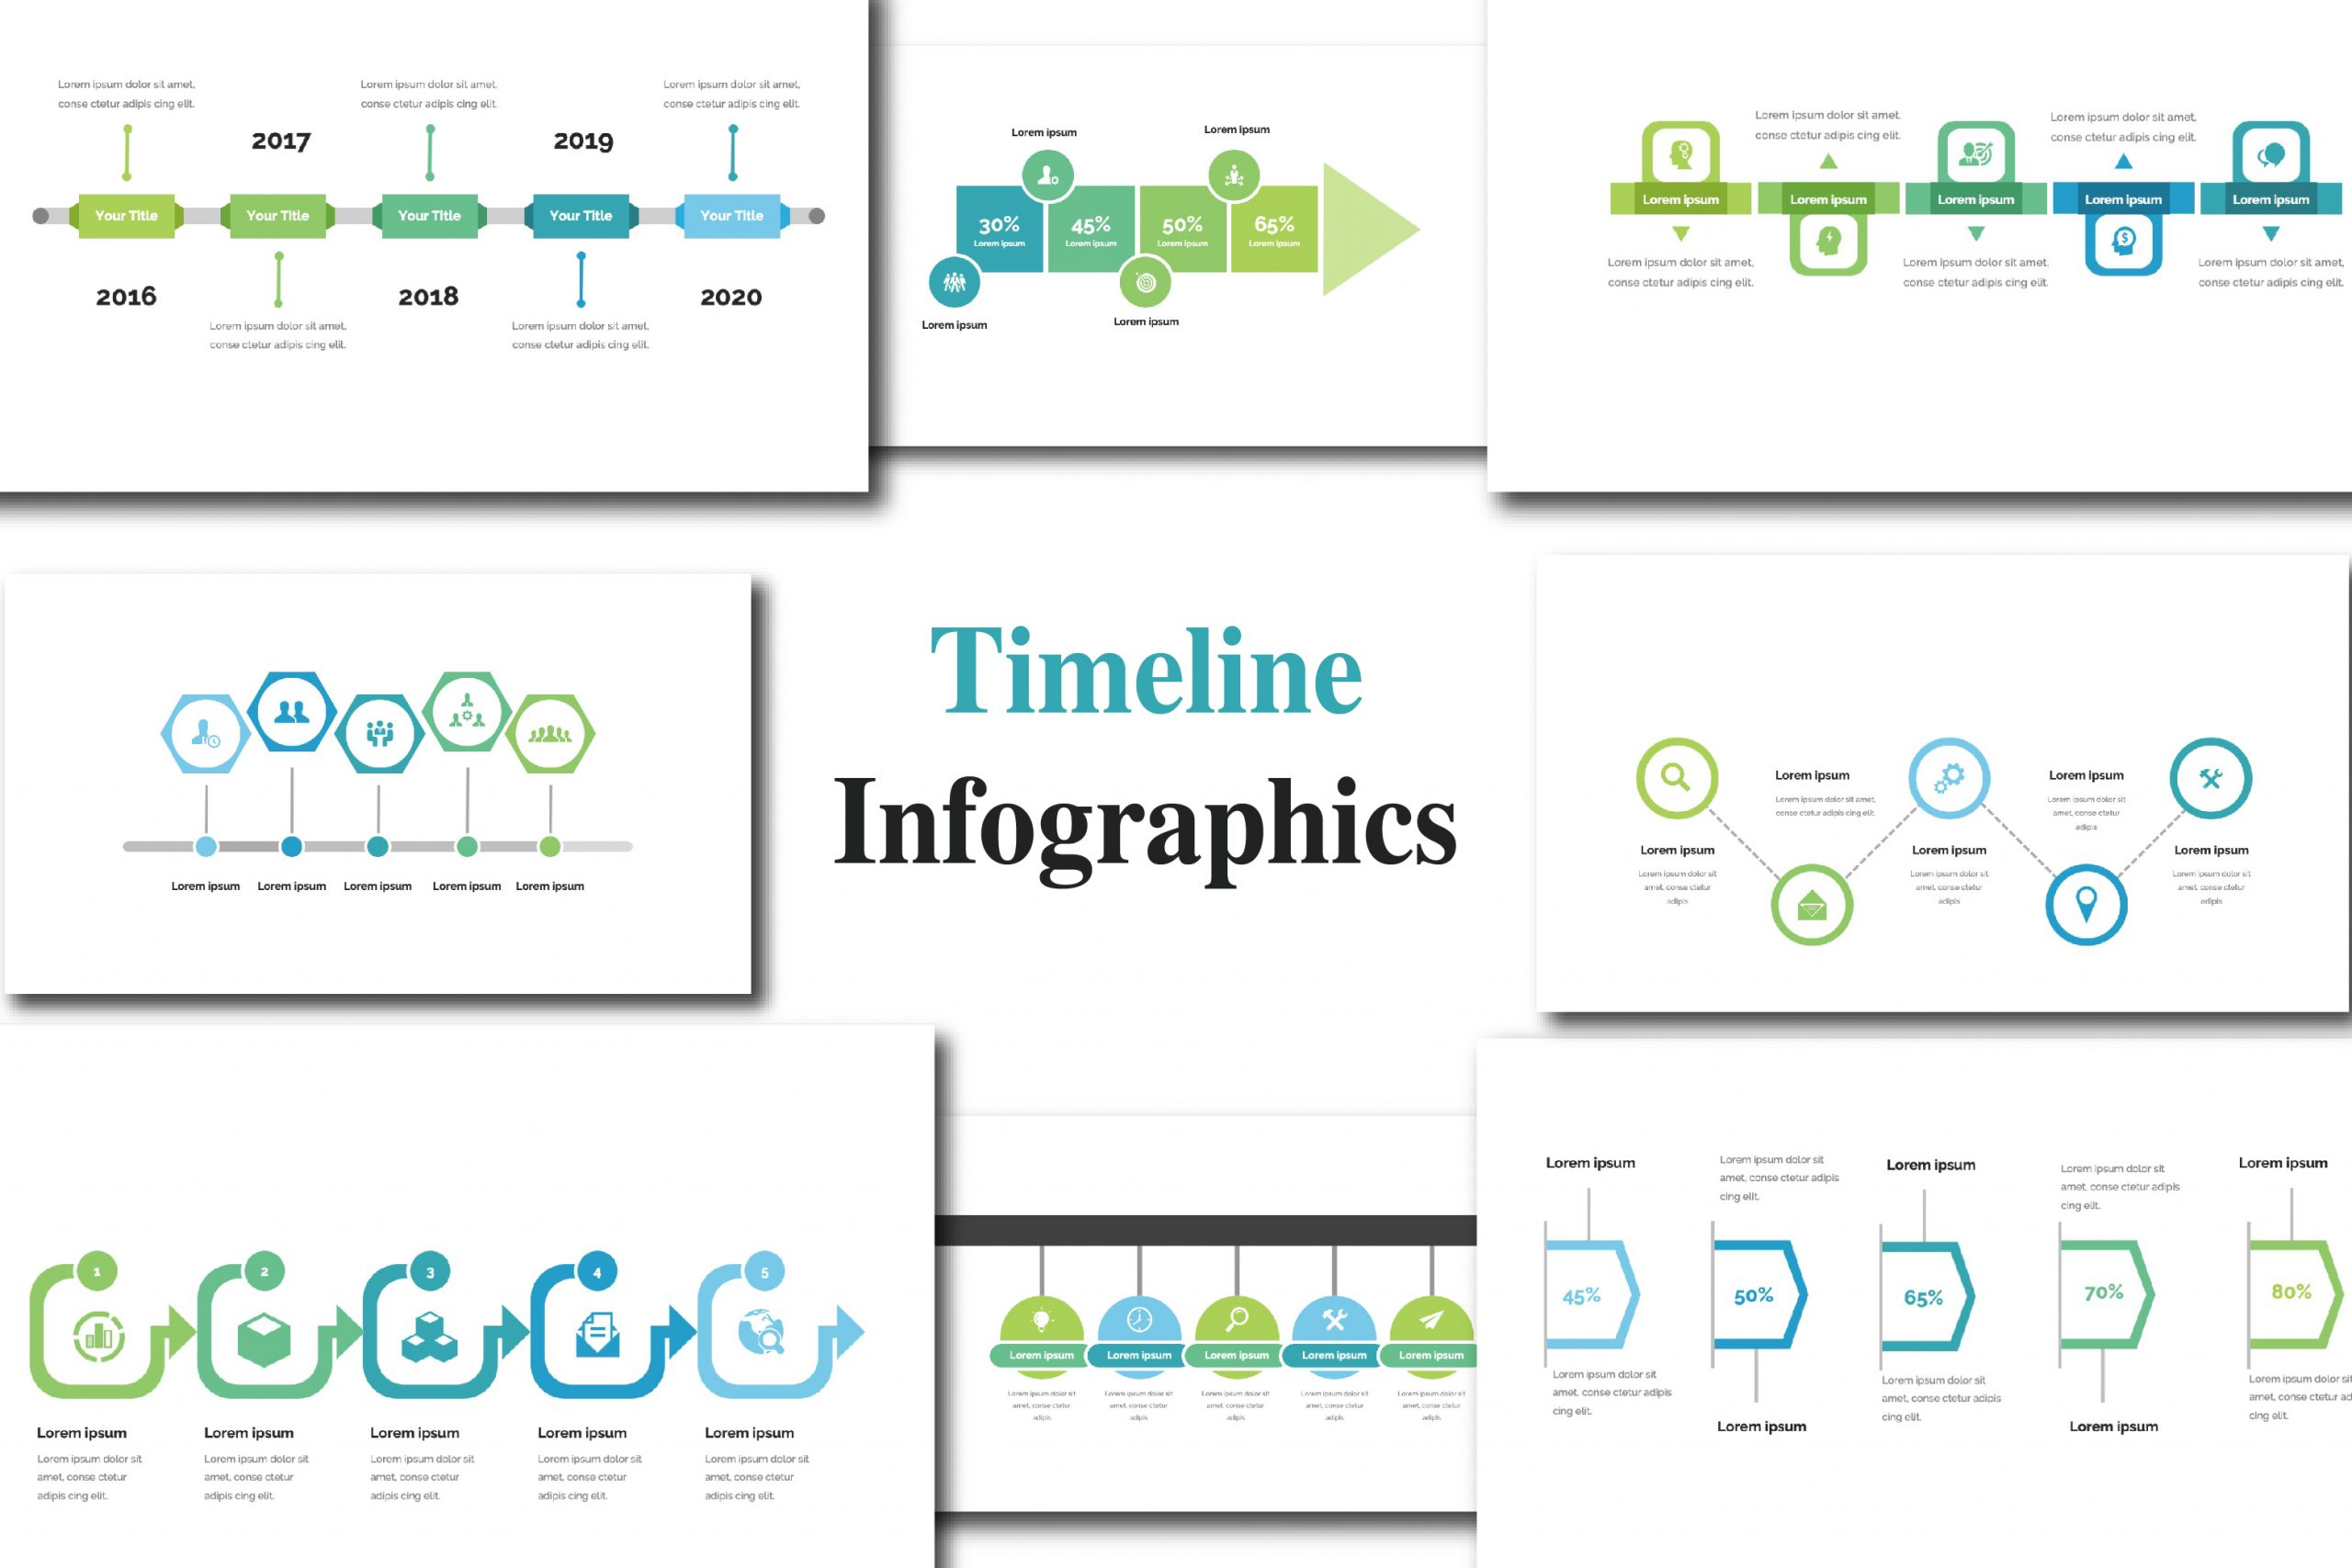 Free template of Timeline Infographic